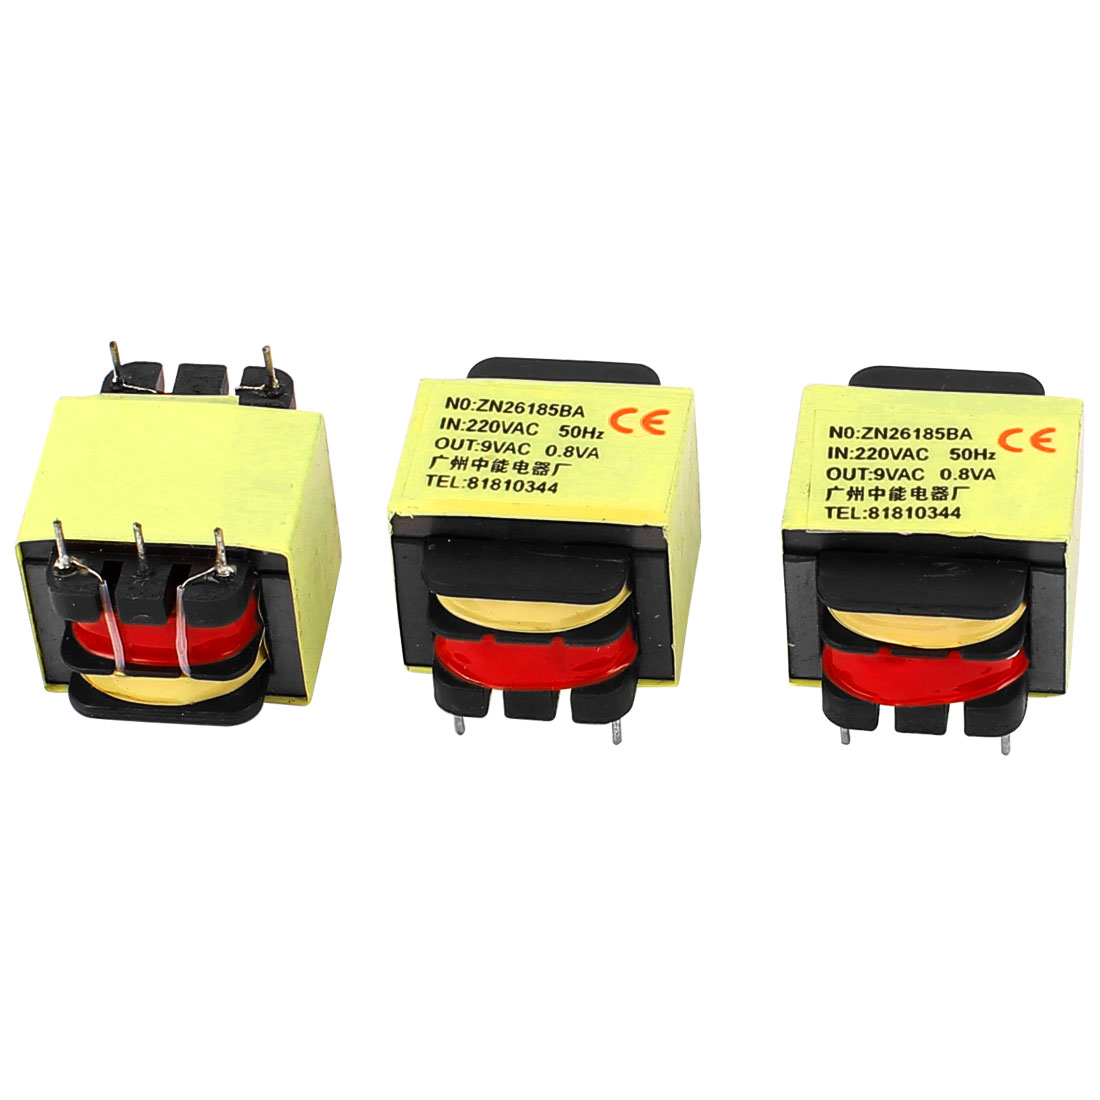 3PCs 220V Input 9V 0.8W Output Yellow Red Ferrite Core Power Transformer w 5 Terminals